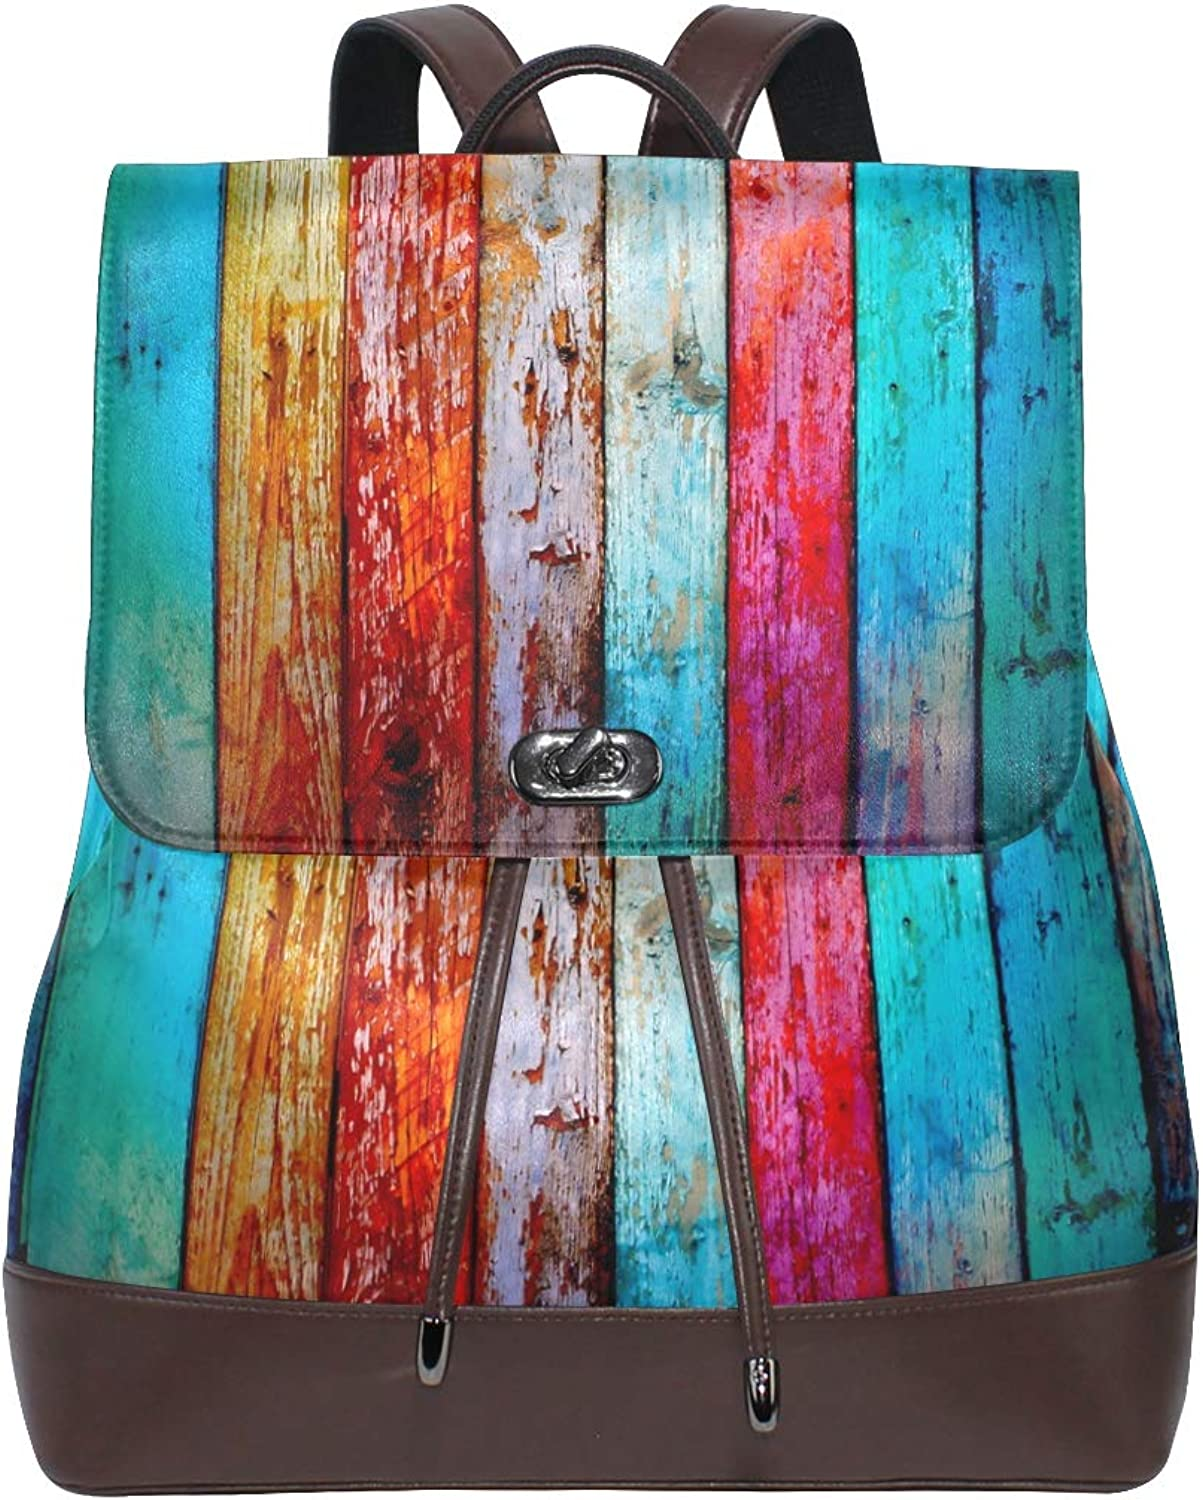 FAJRO colorful Rainbow Grungy Bord Pattern Travel Backpack Leather Handbag School Pack